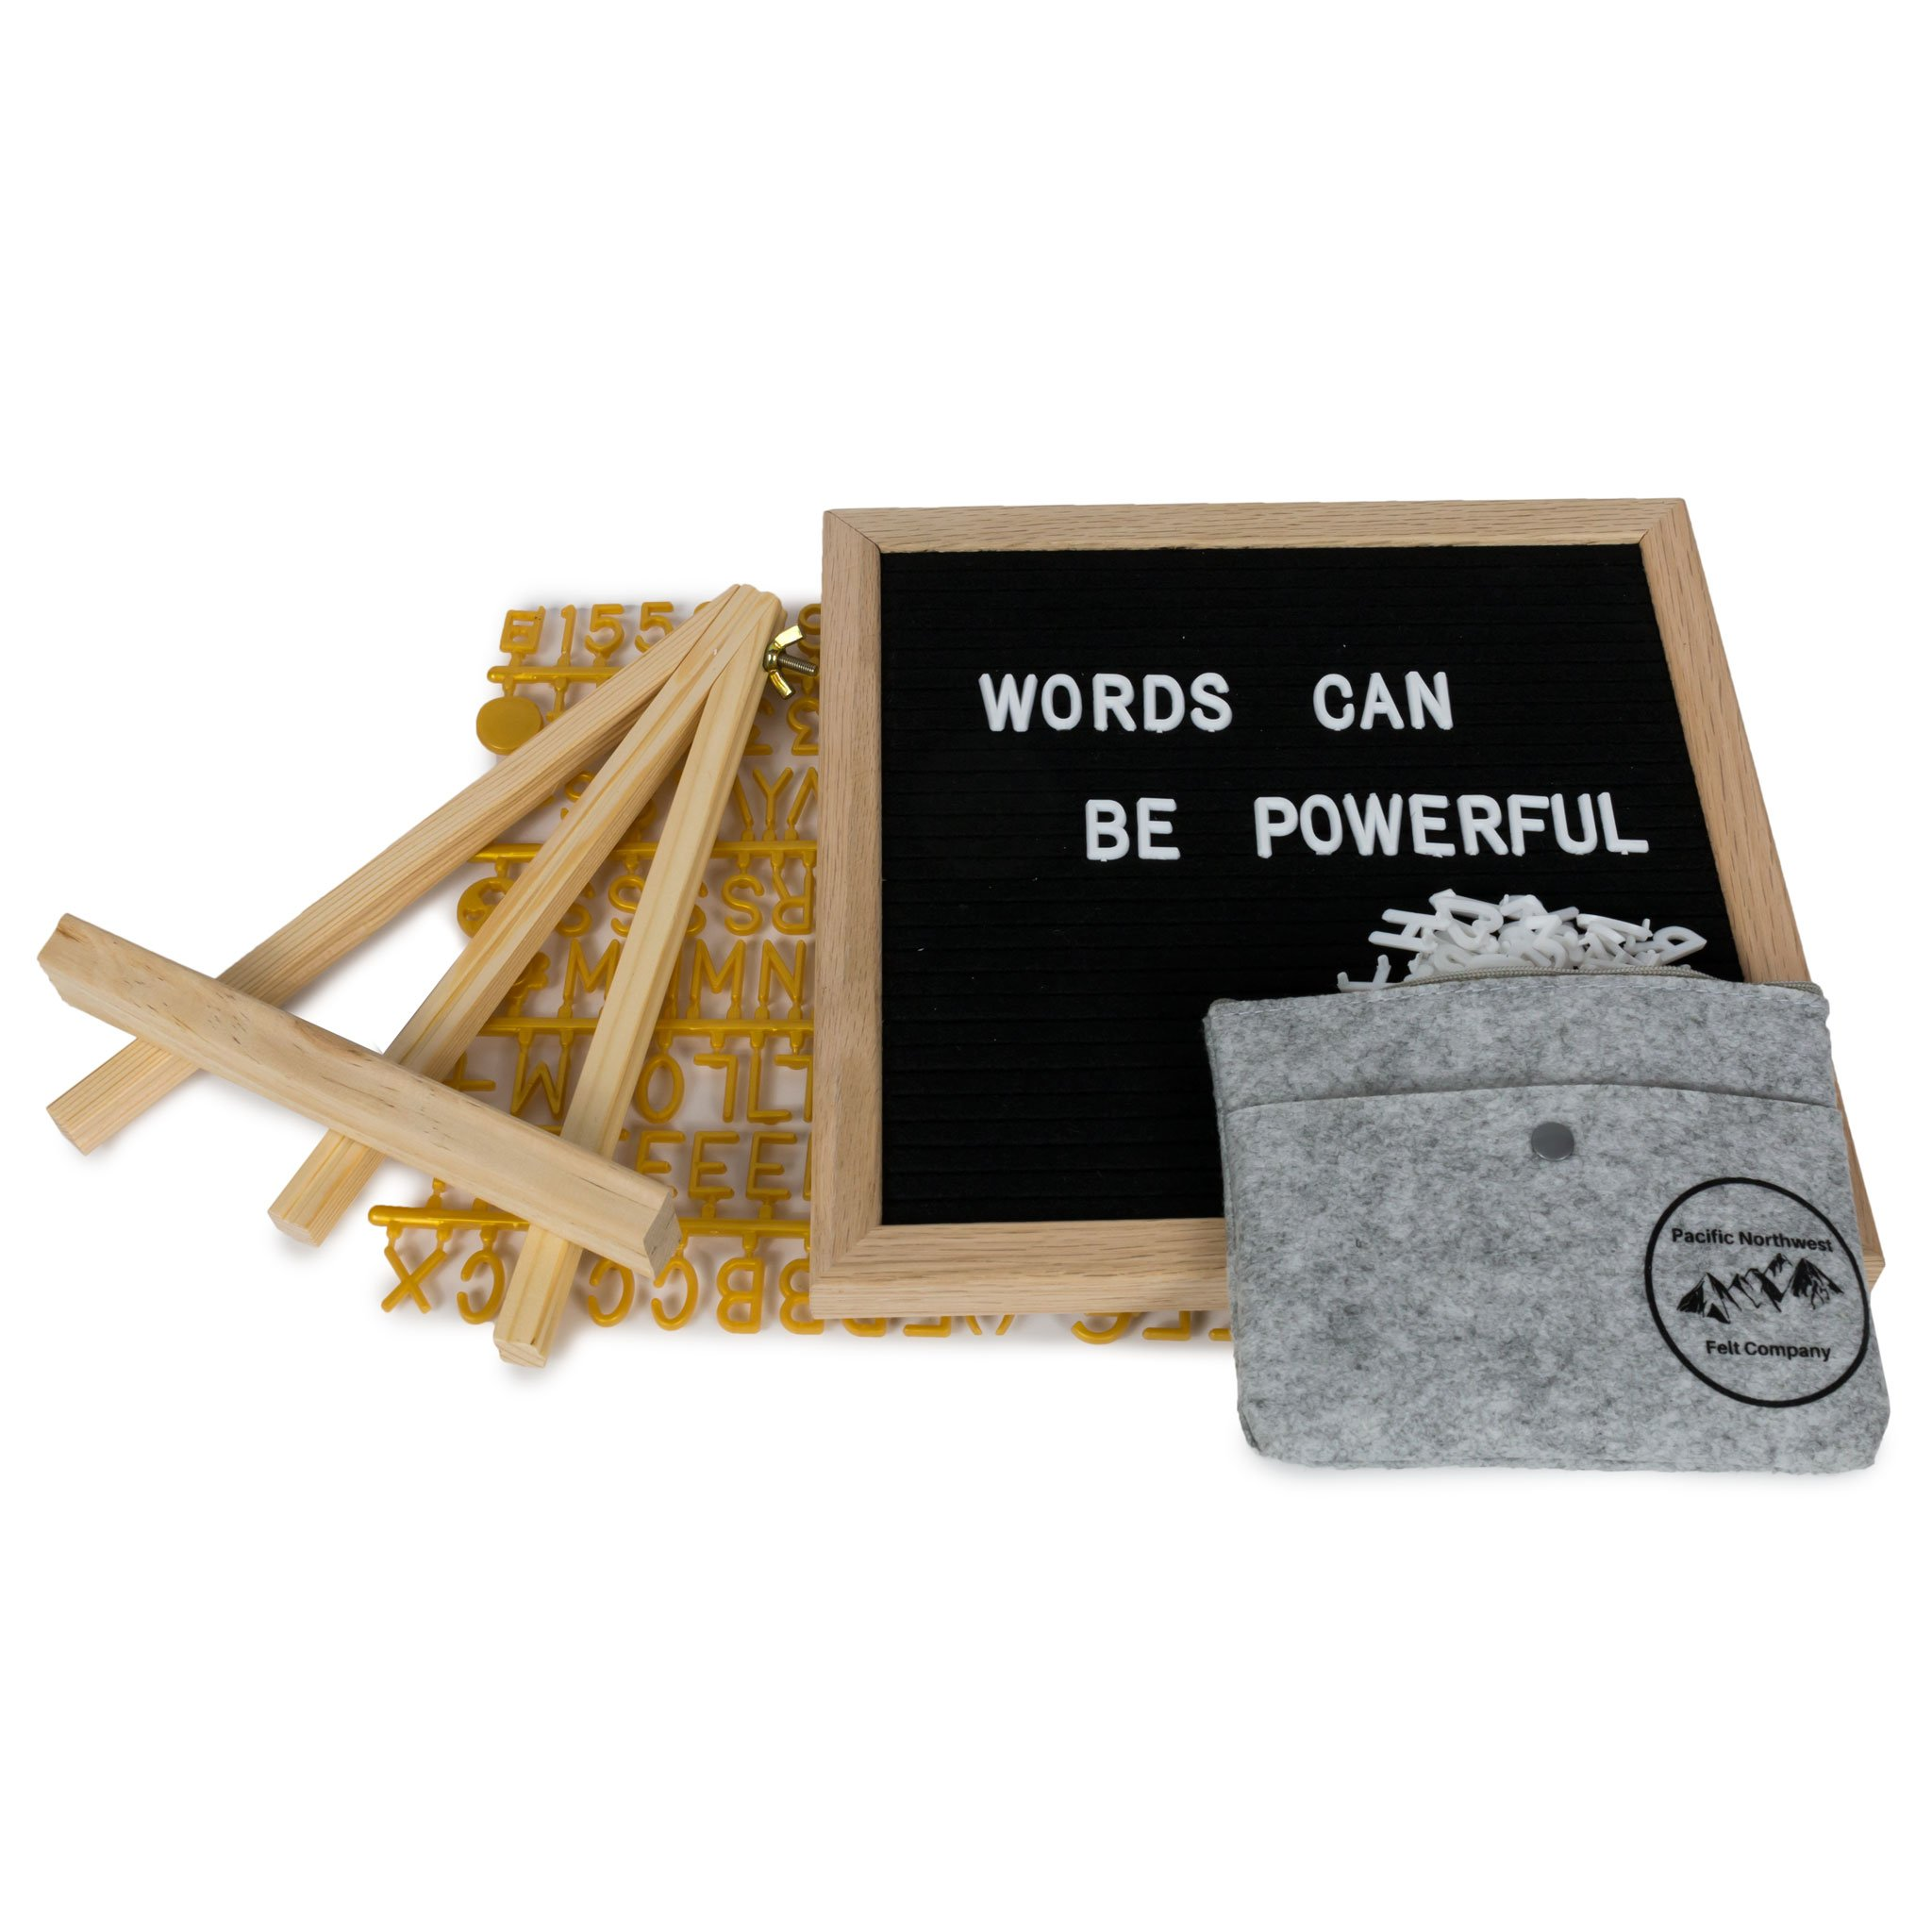 Black Felt Letter Board, 720 Letters, White and Gold, 10''x10'', Oak Frame, Wall Mount, Stand, Scissors, 2 Felt Bags. by Pacific Northwest Felt Co. (Image #1)